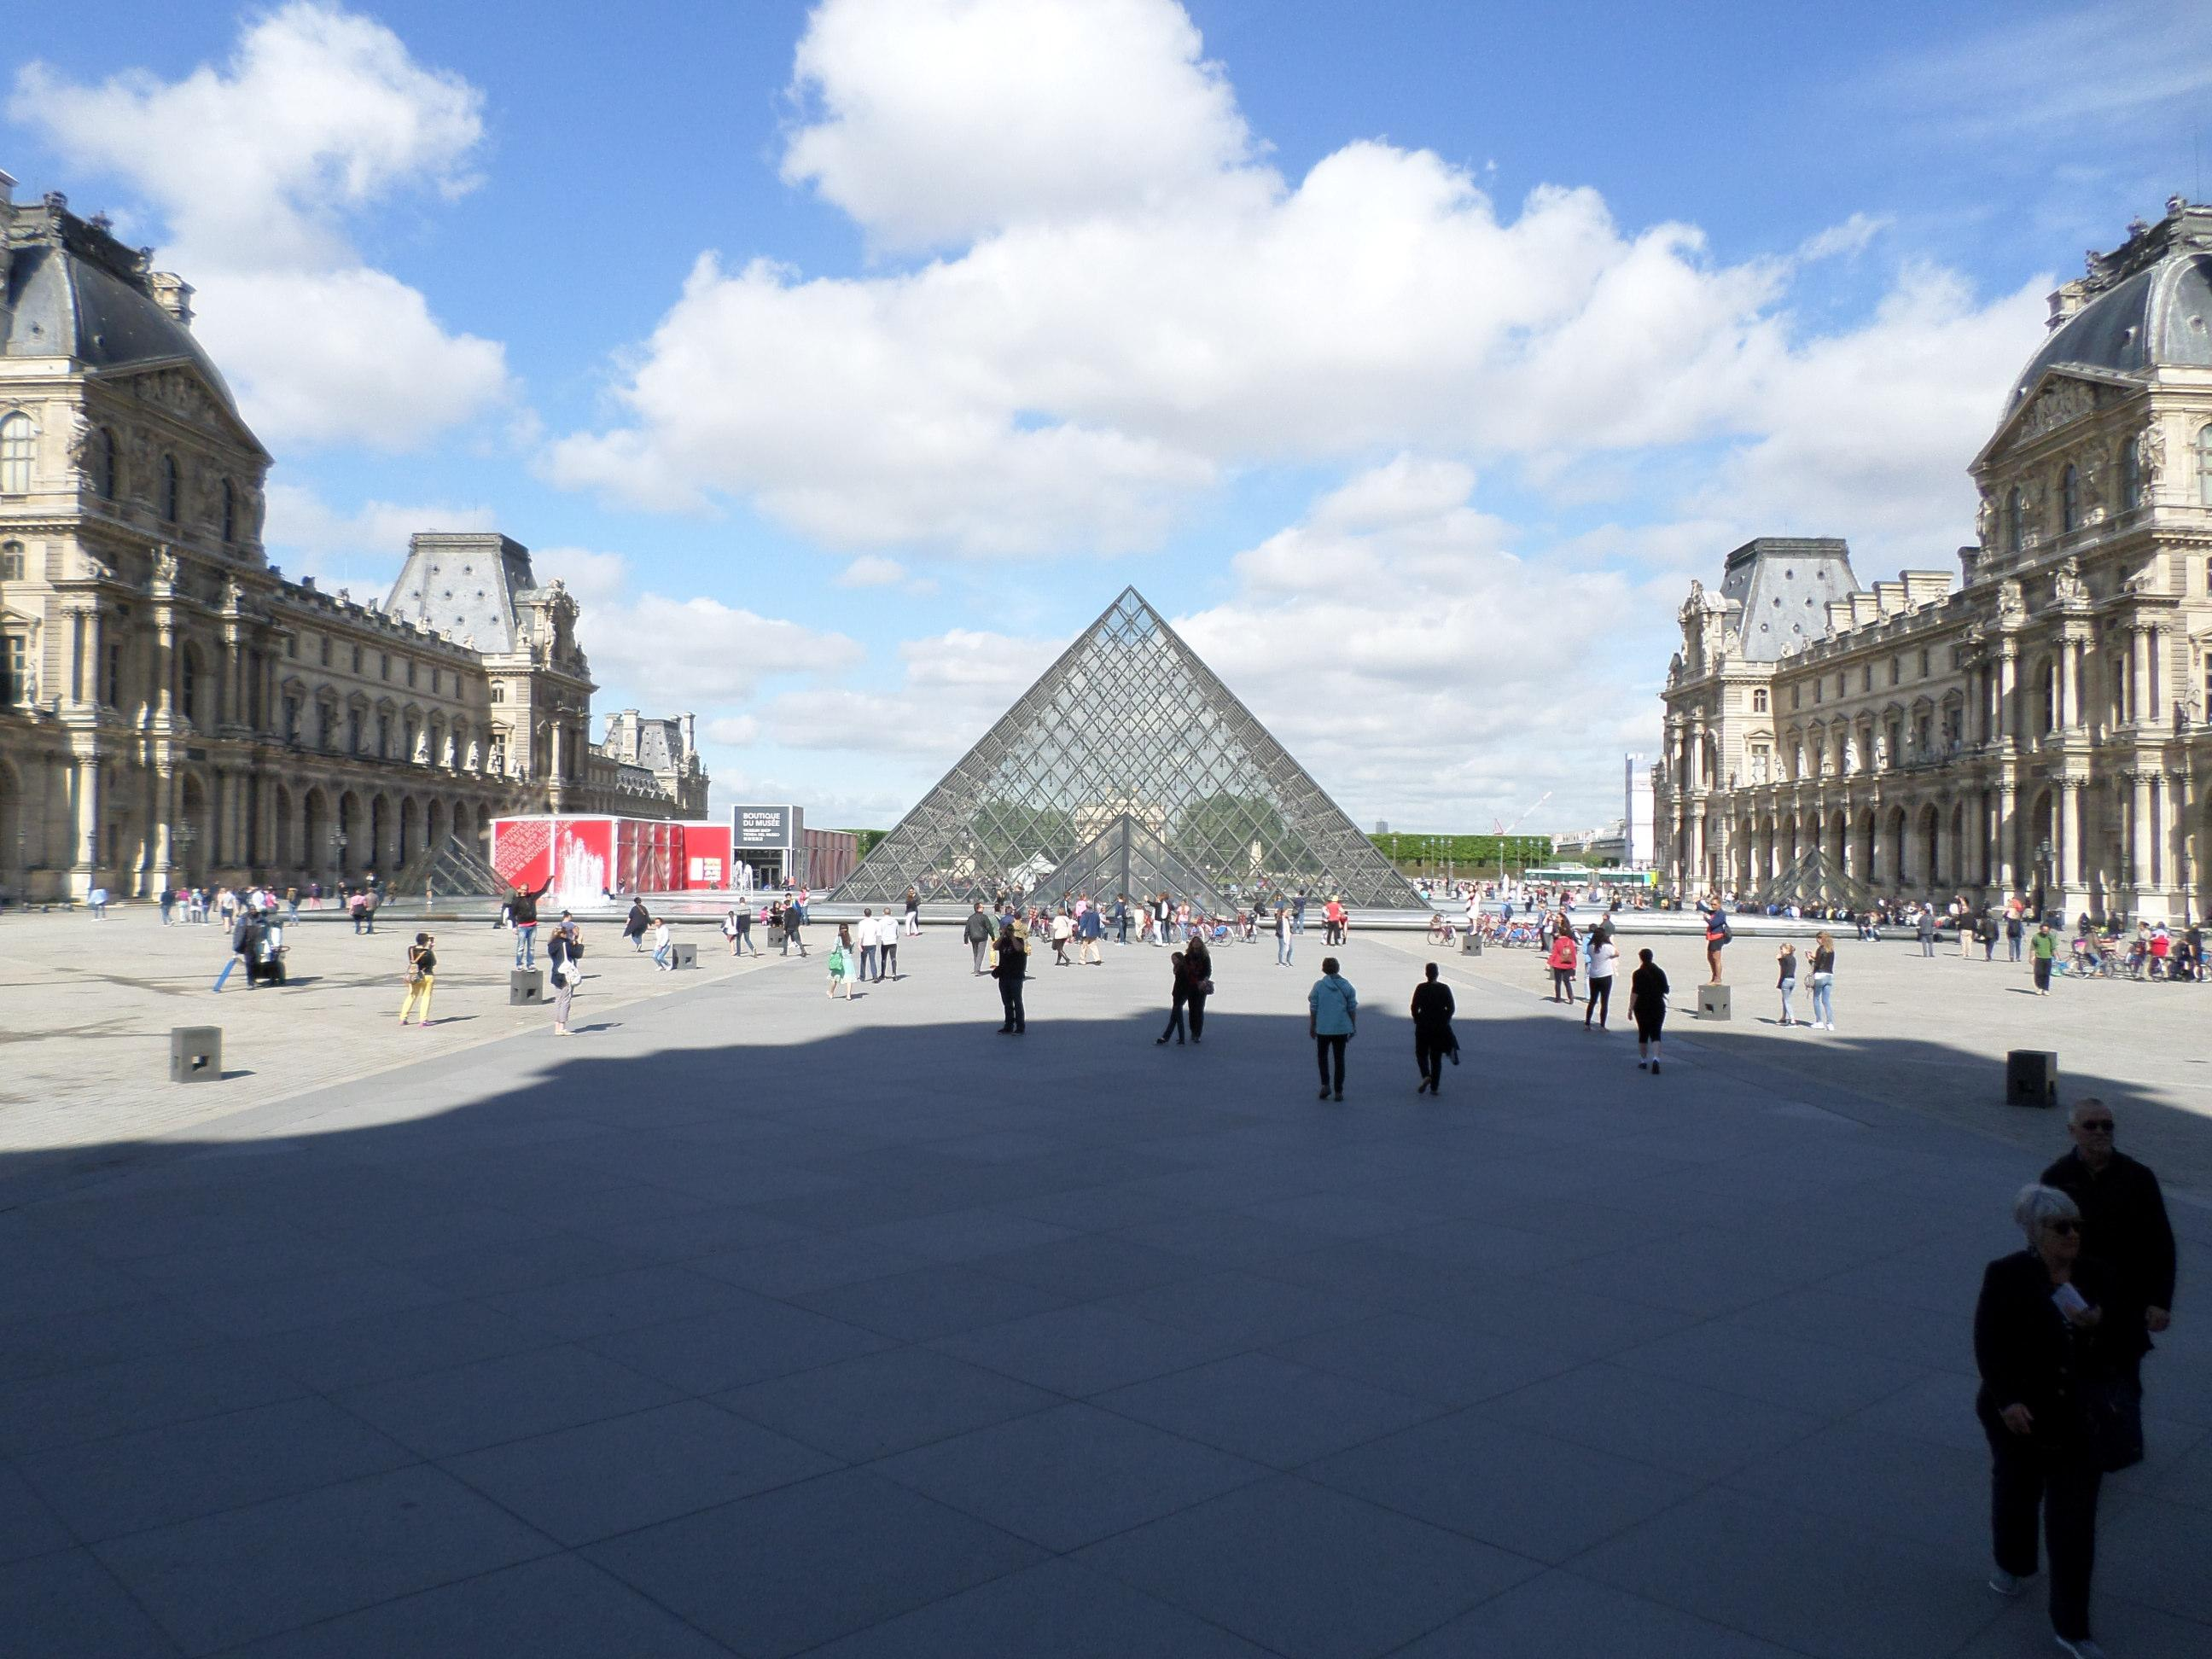 The square with the glass pyramid at the Louvre